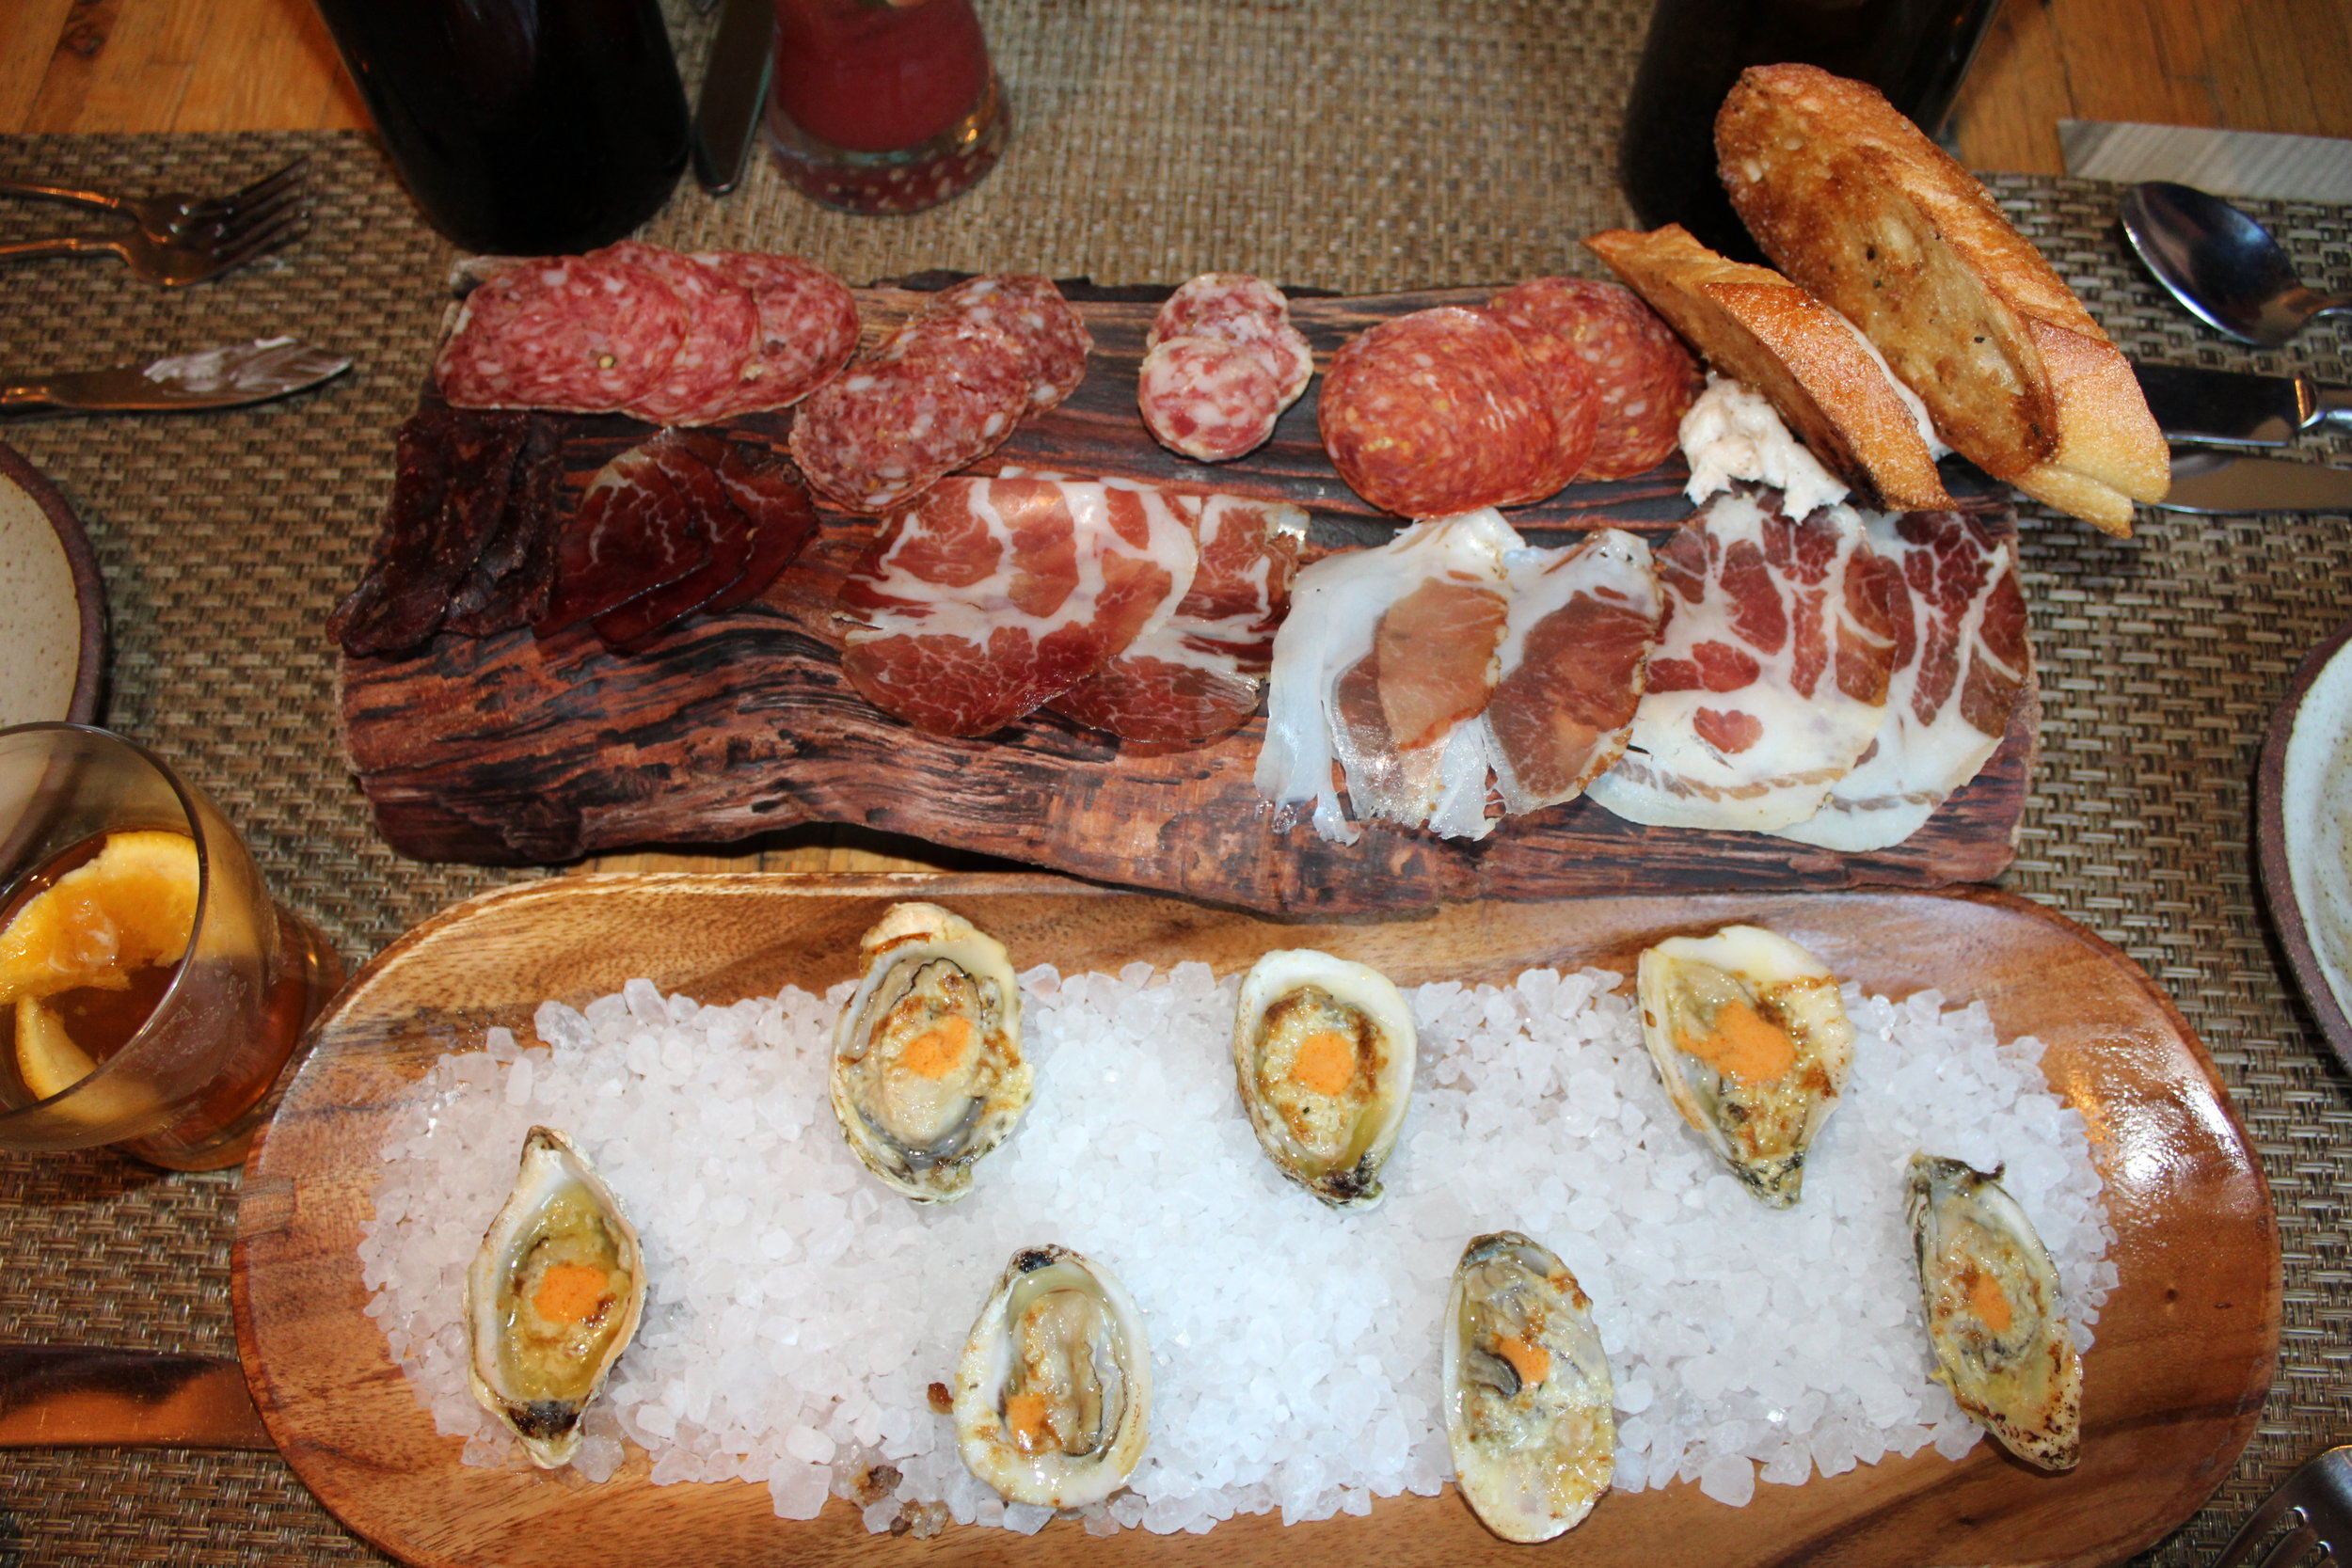 Top: Meat Plate (lardo in the top right corner and beef jerky in the bottom left. Bottom: Oysters.